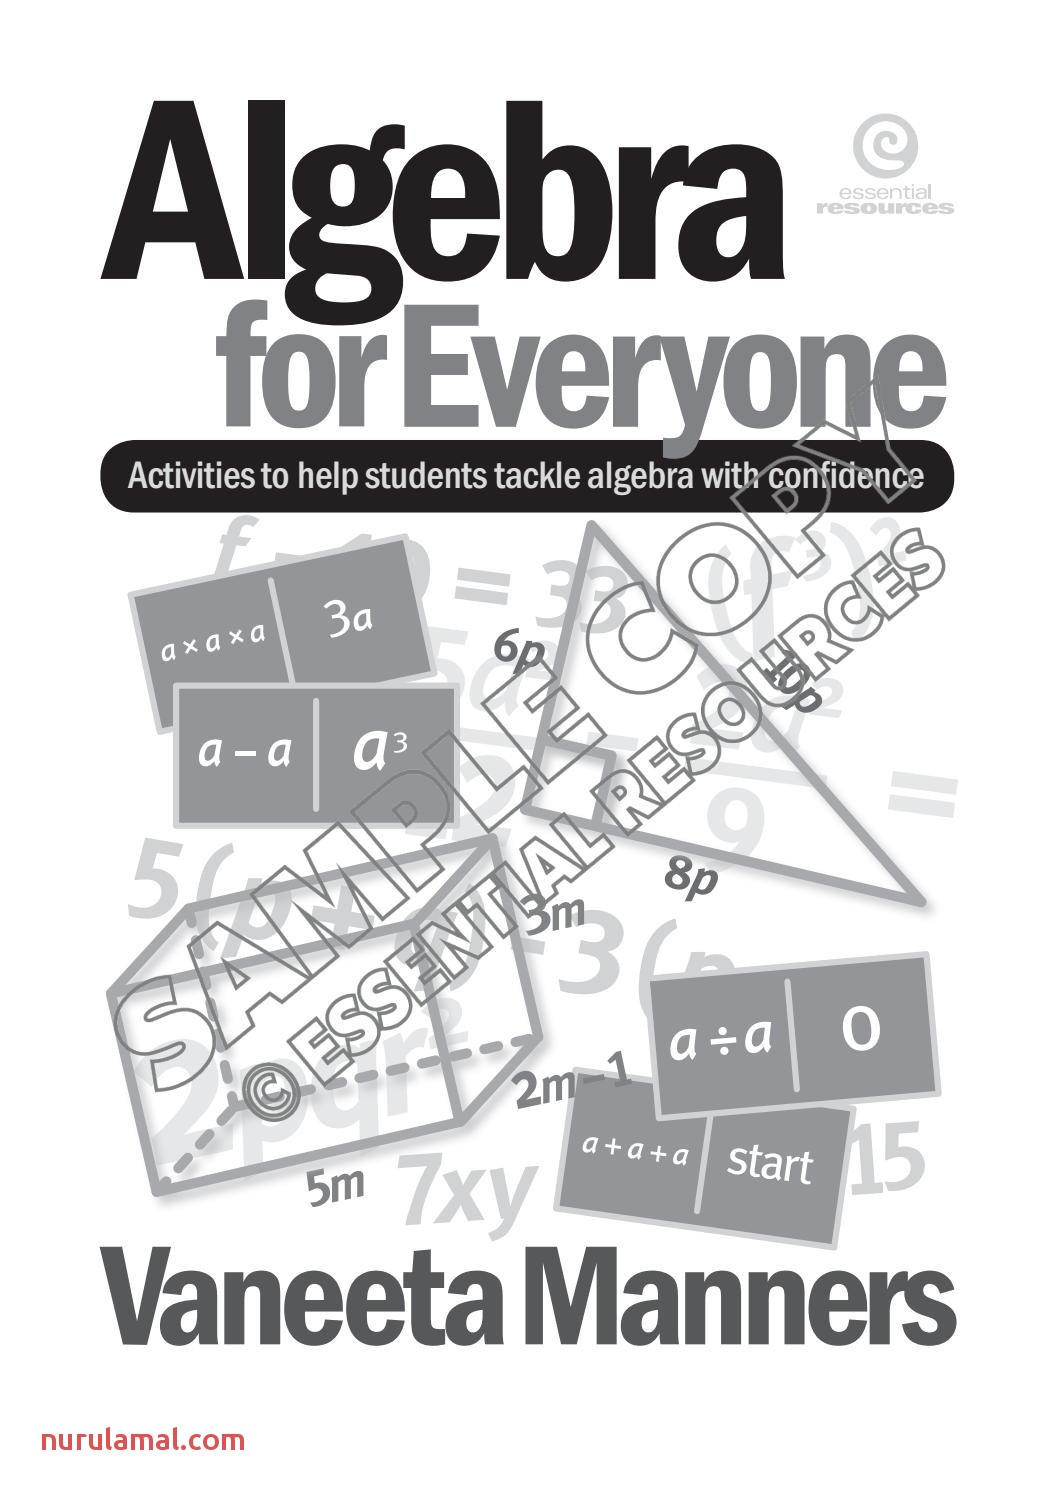 Algebra for Everyone by Outside the Box Learning Resources